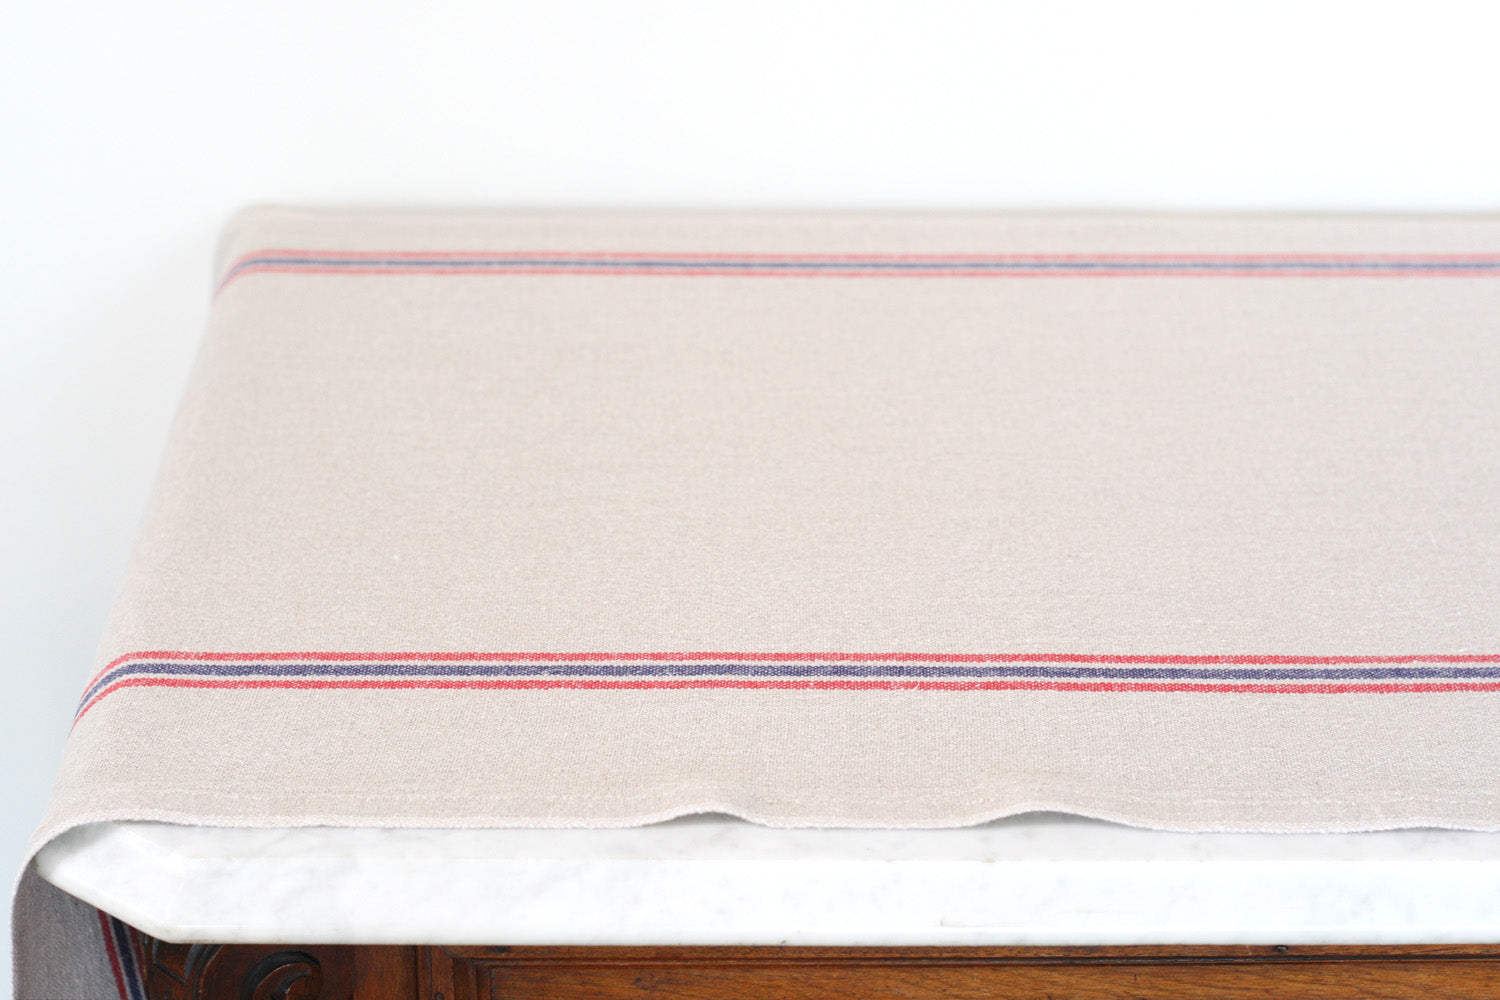 Linen 'Drapeau' Table Runner